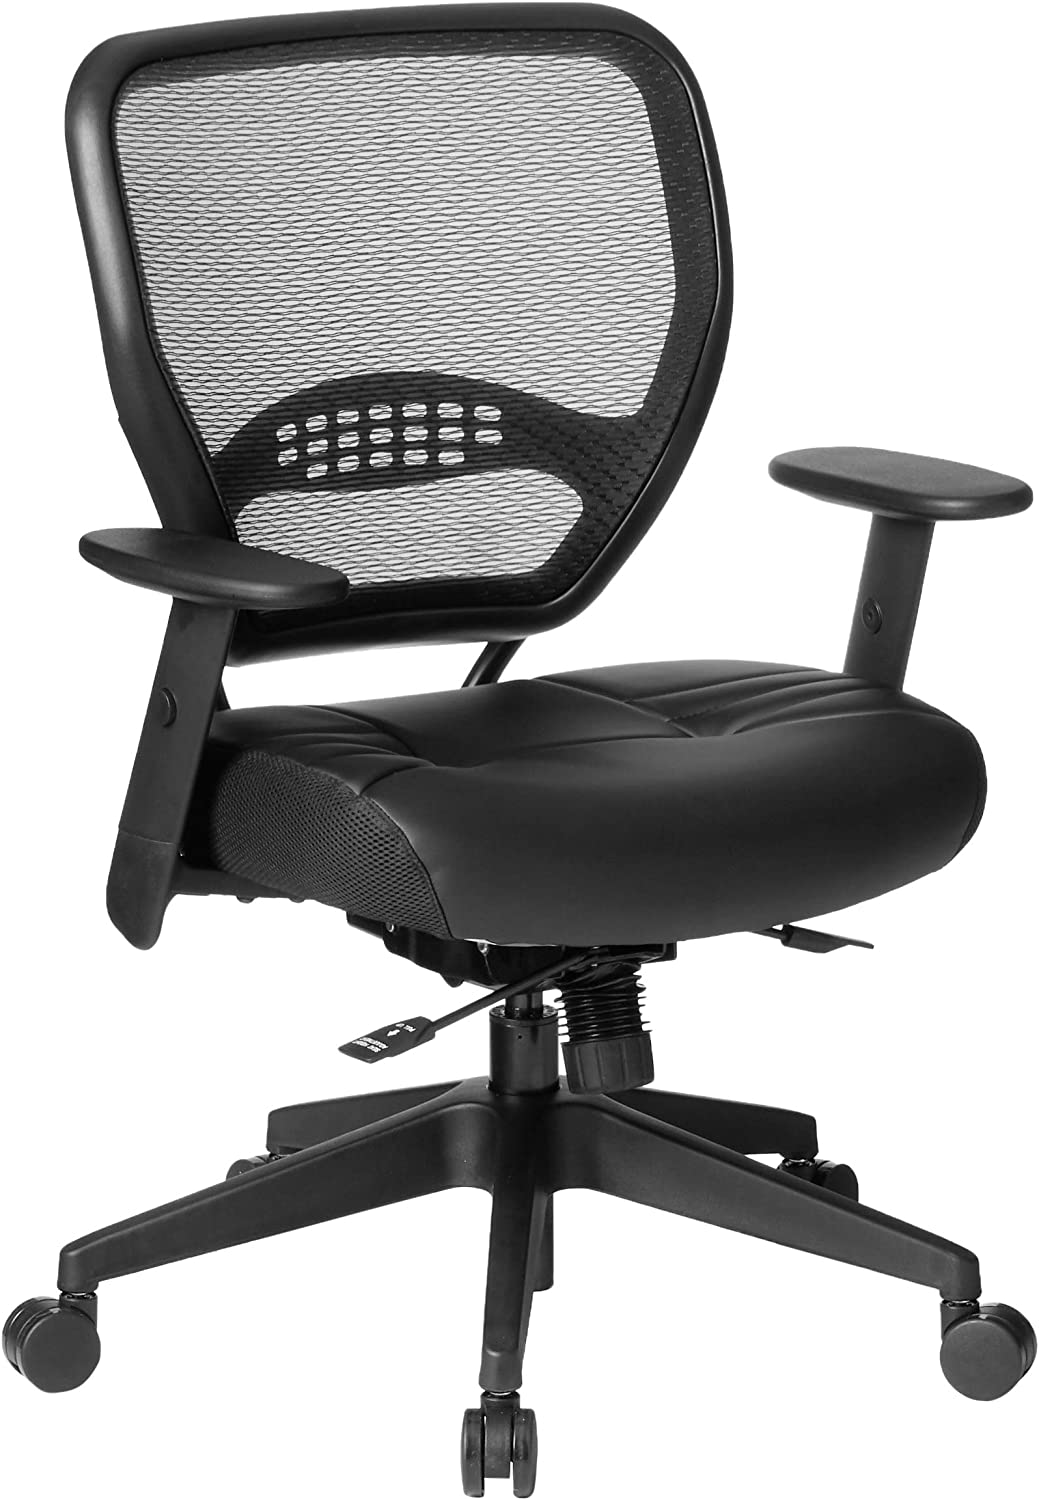 SPACE Seating AirGrid Back and Padded Stitched Bonded Leather Seat, 2-to-1 Synchro Tilt Control, Adjustable Arms, Nylon Base Adjustable Managers Chair, Black